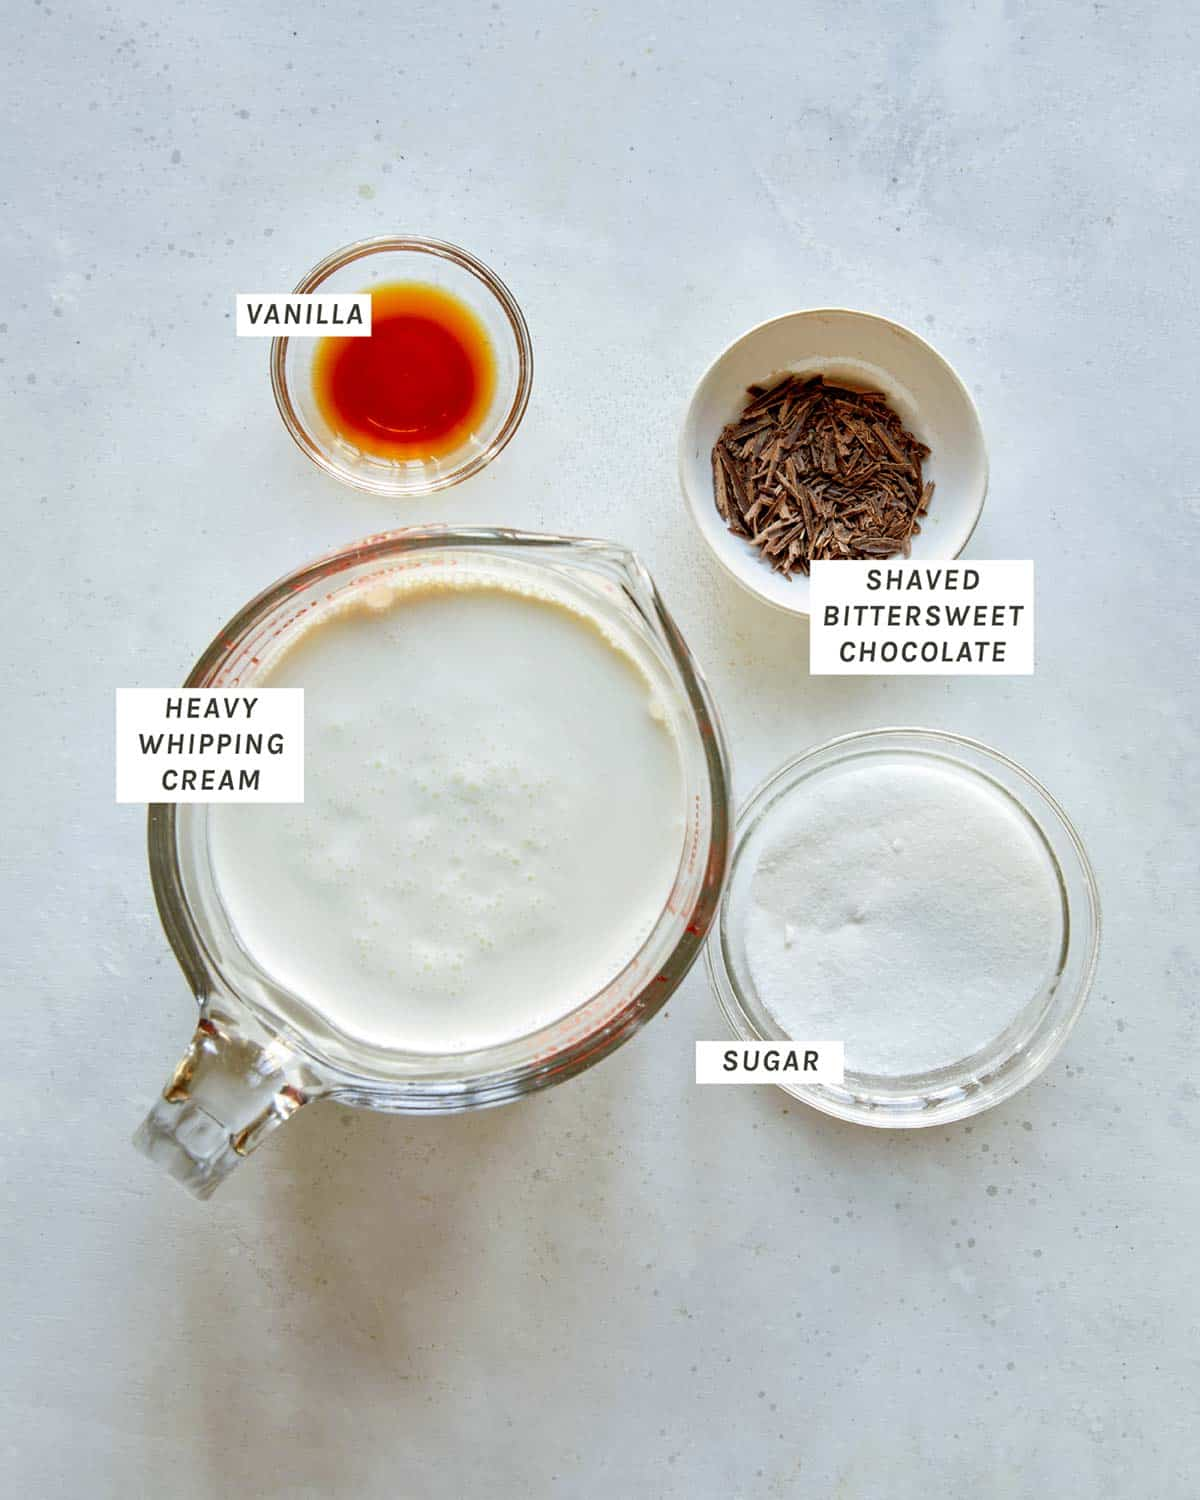 Ingredients for making the French silk pie filling.